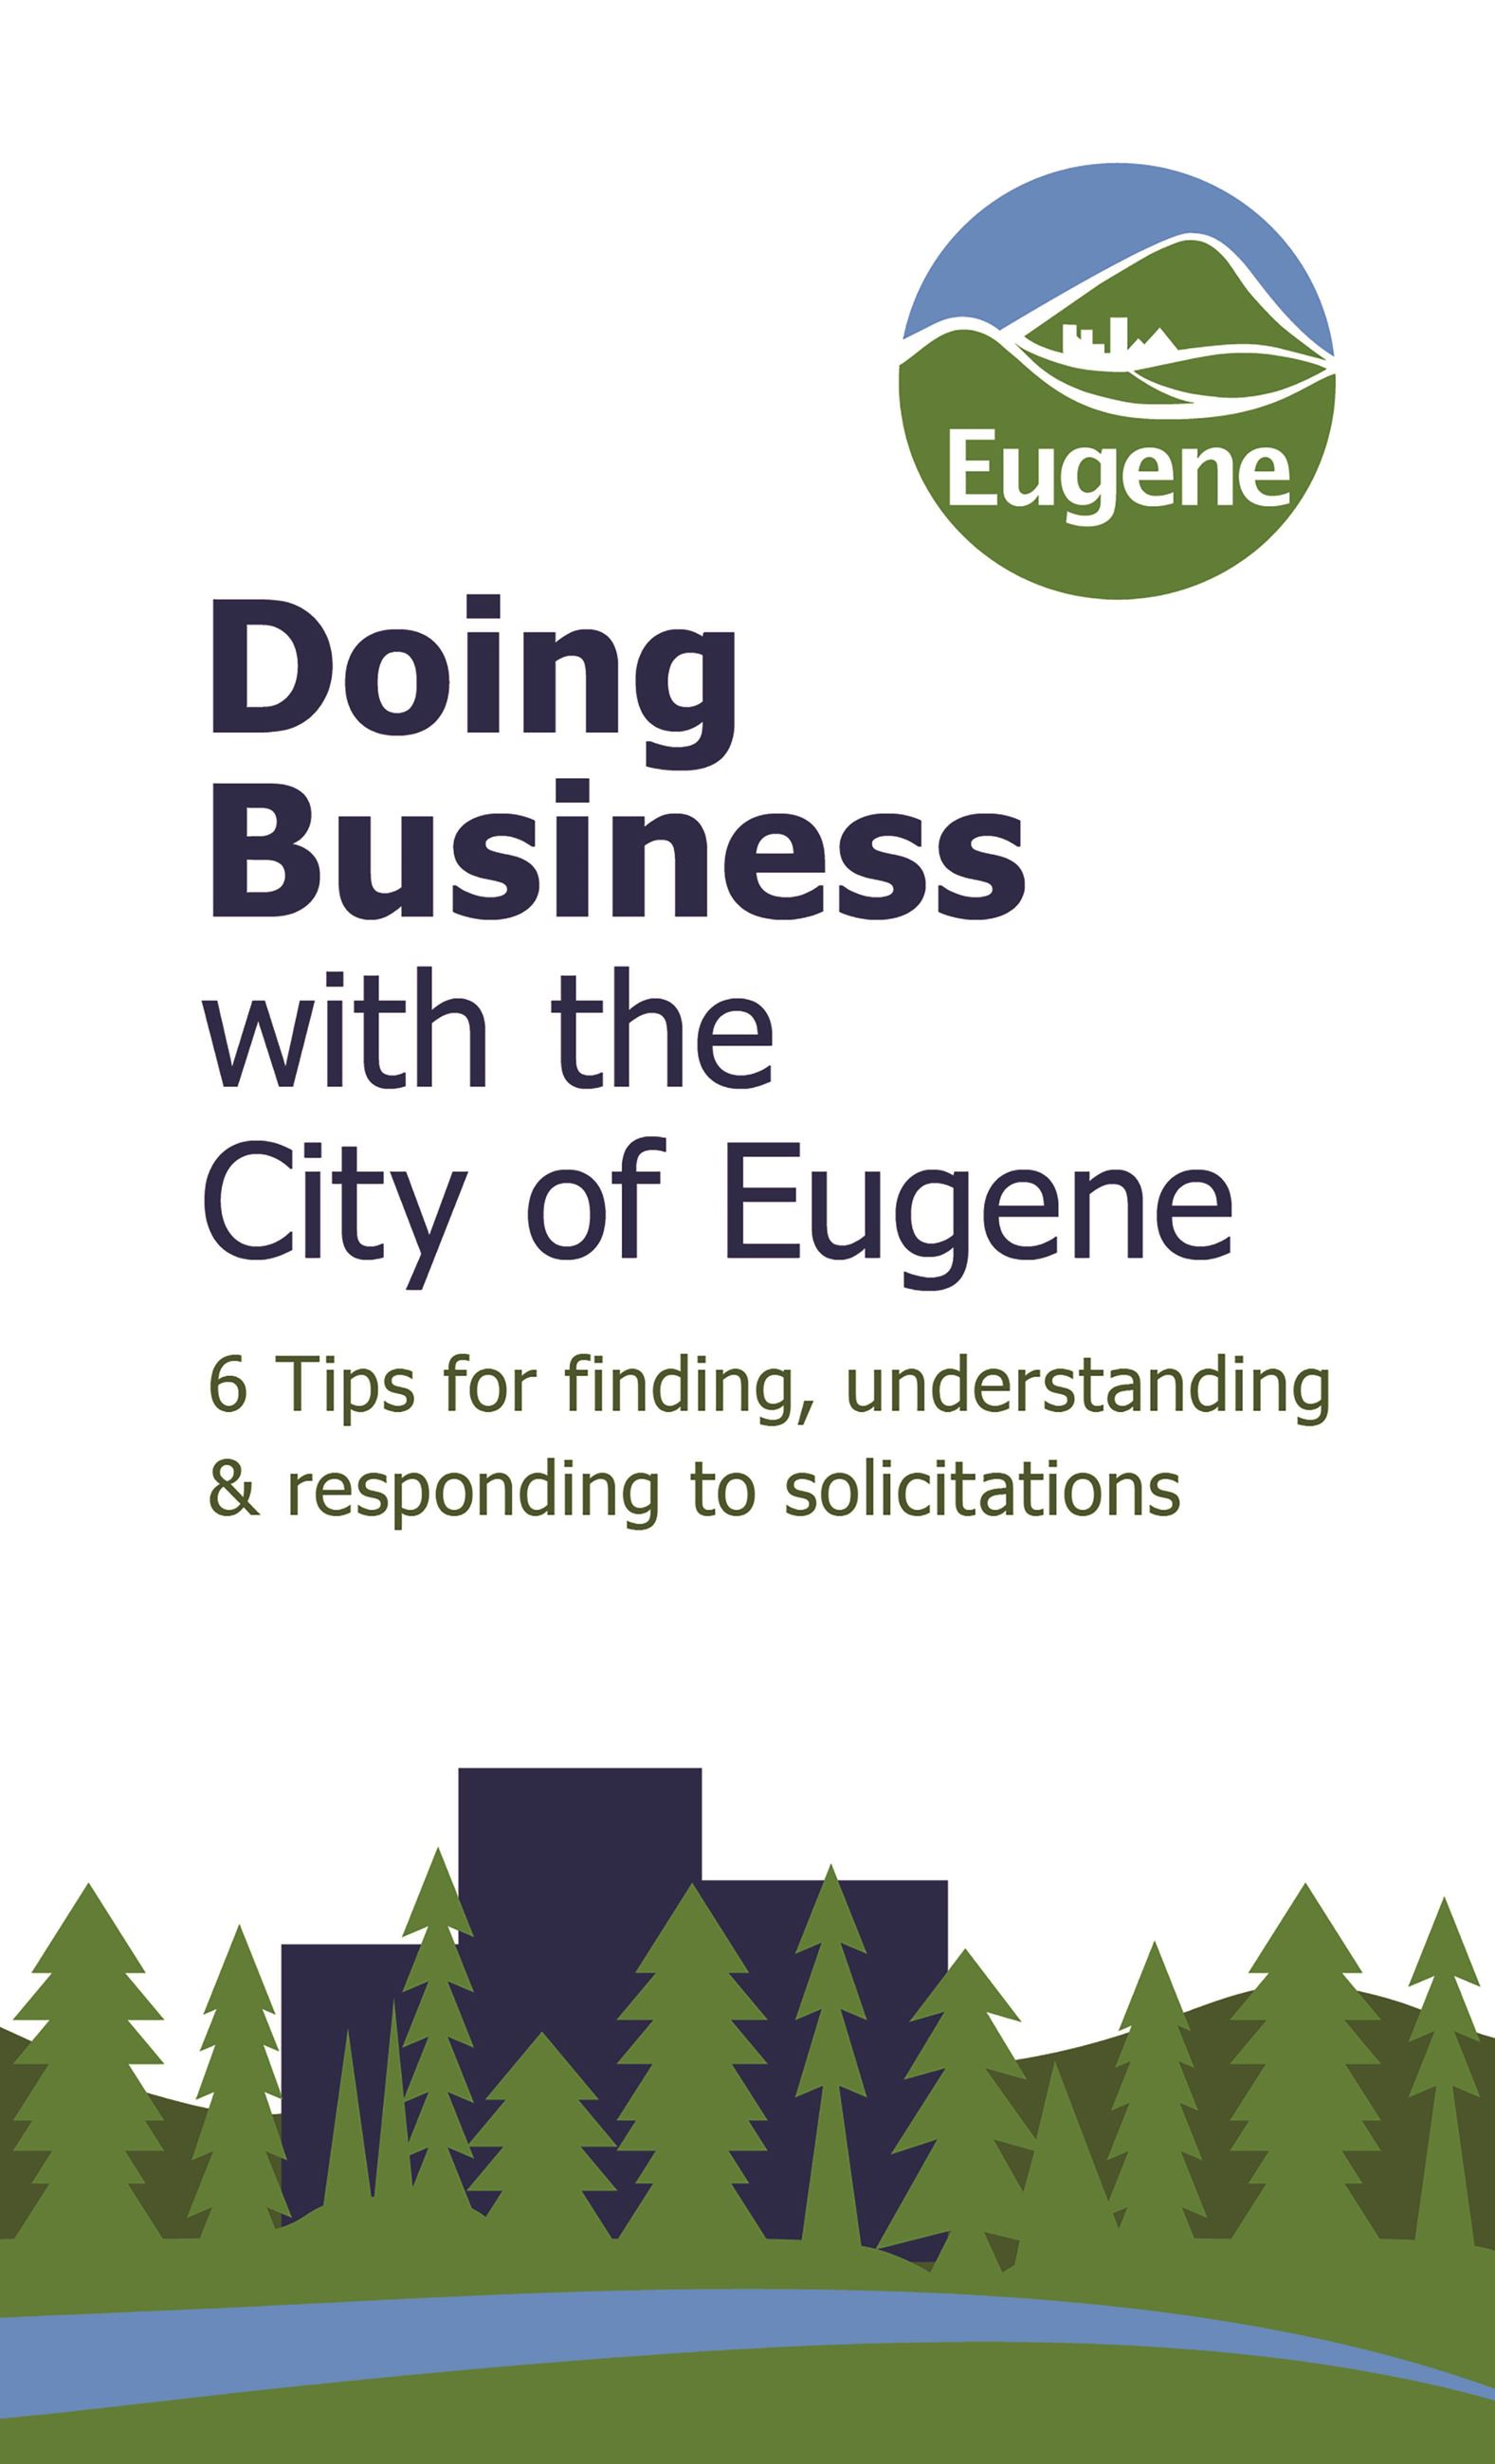 6 Tips for Doing Business with the City